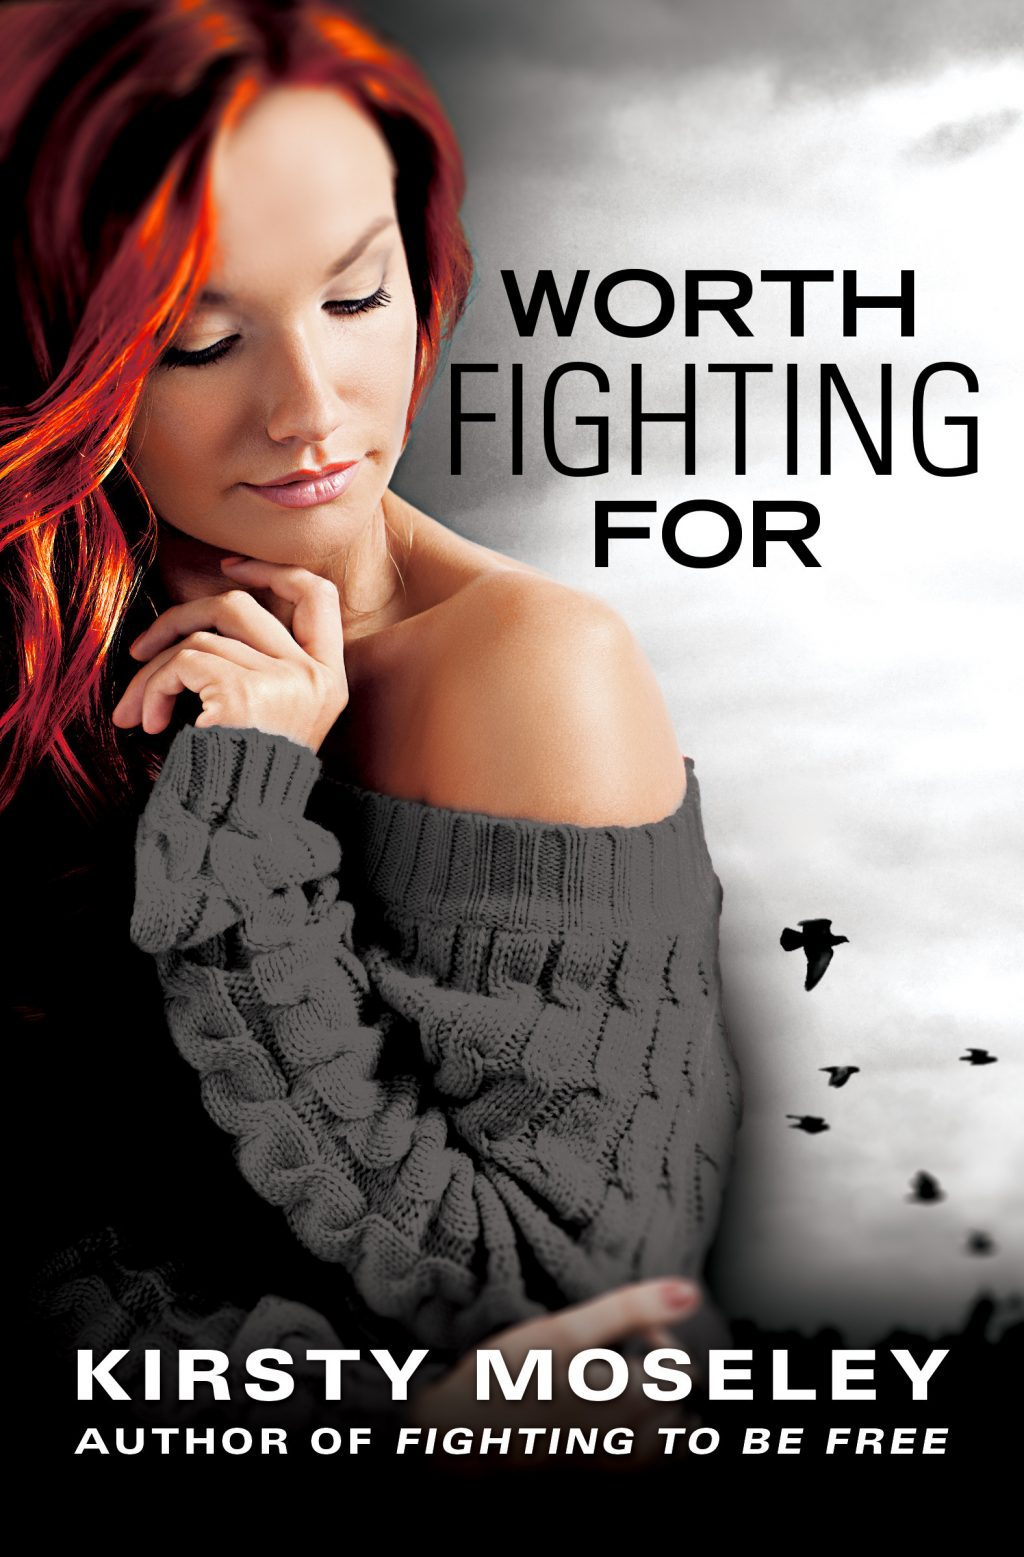 Worth Fighting For (Fighting To Be Free #2) by Kirsty Moseley